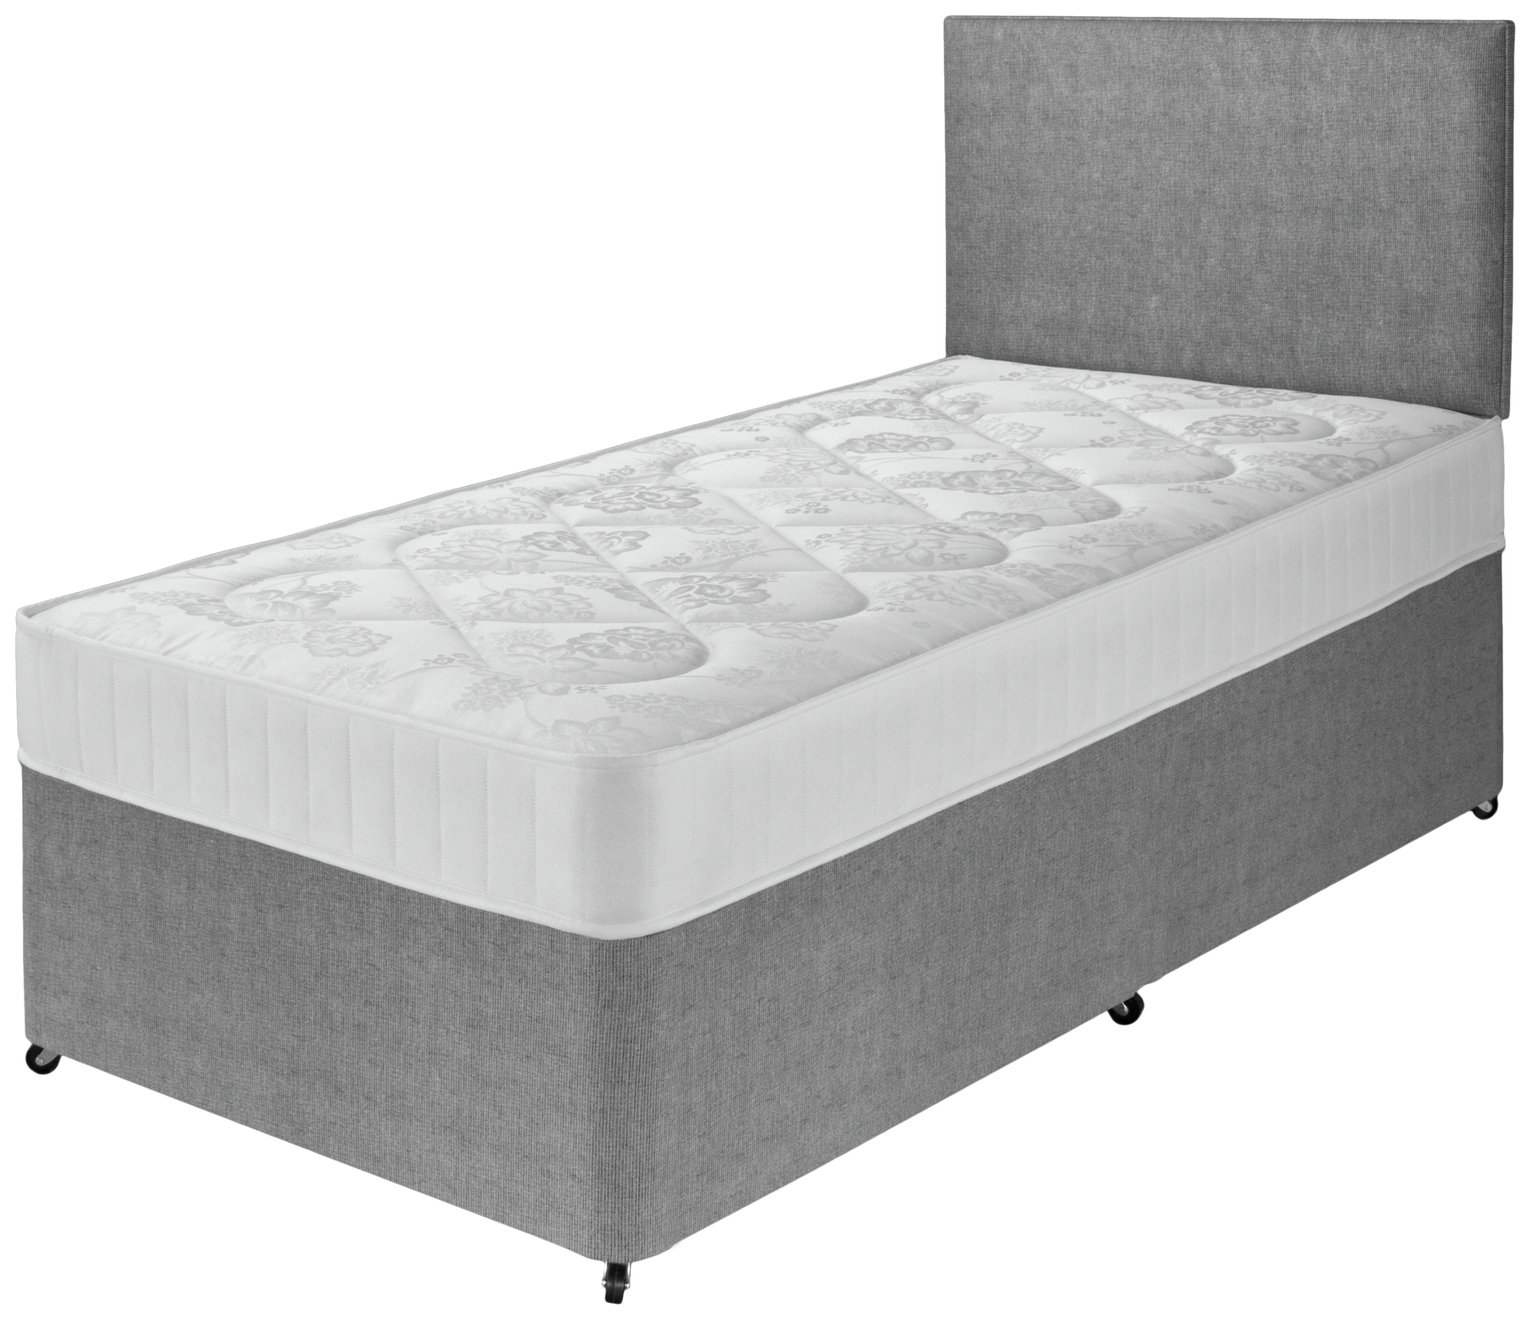 Airsprung Elmdon Comfort Divan Bed - Single